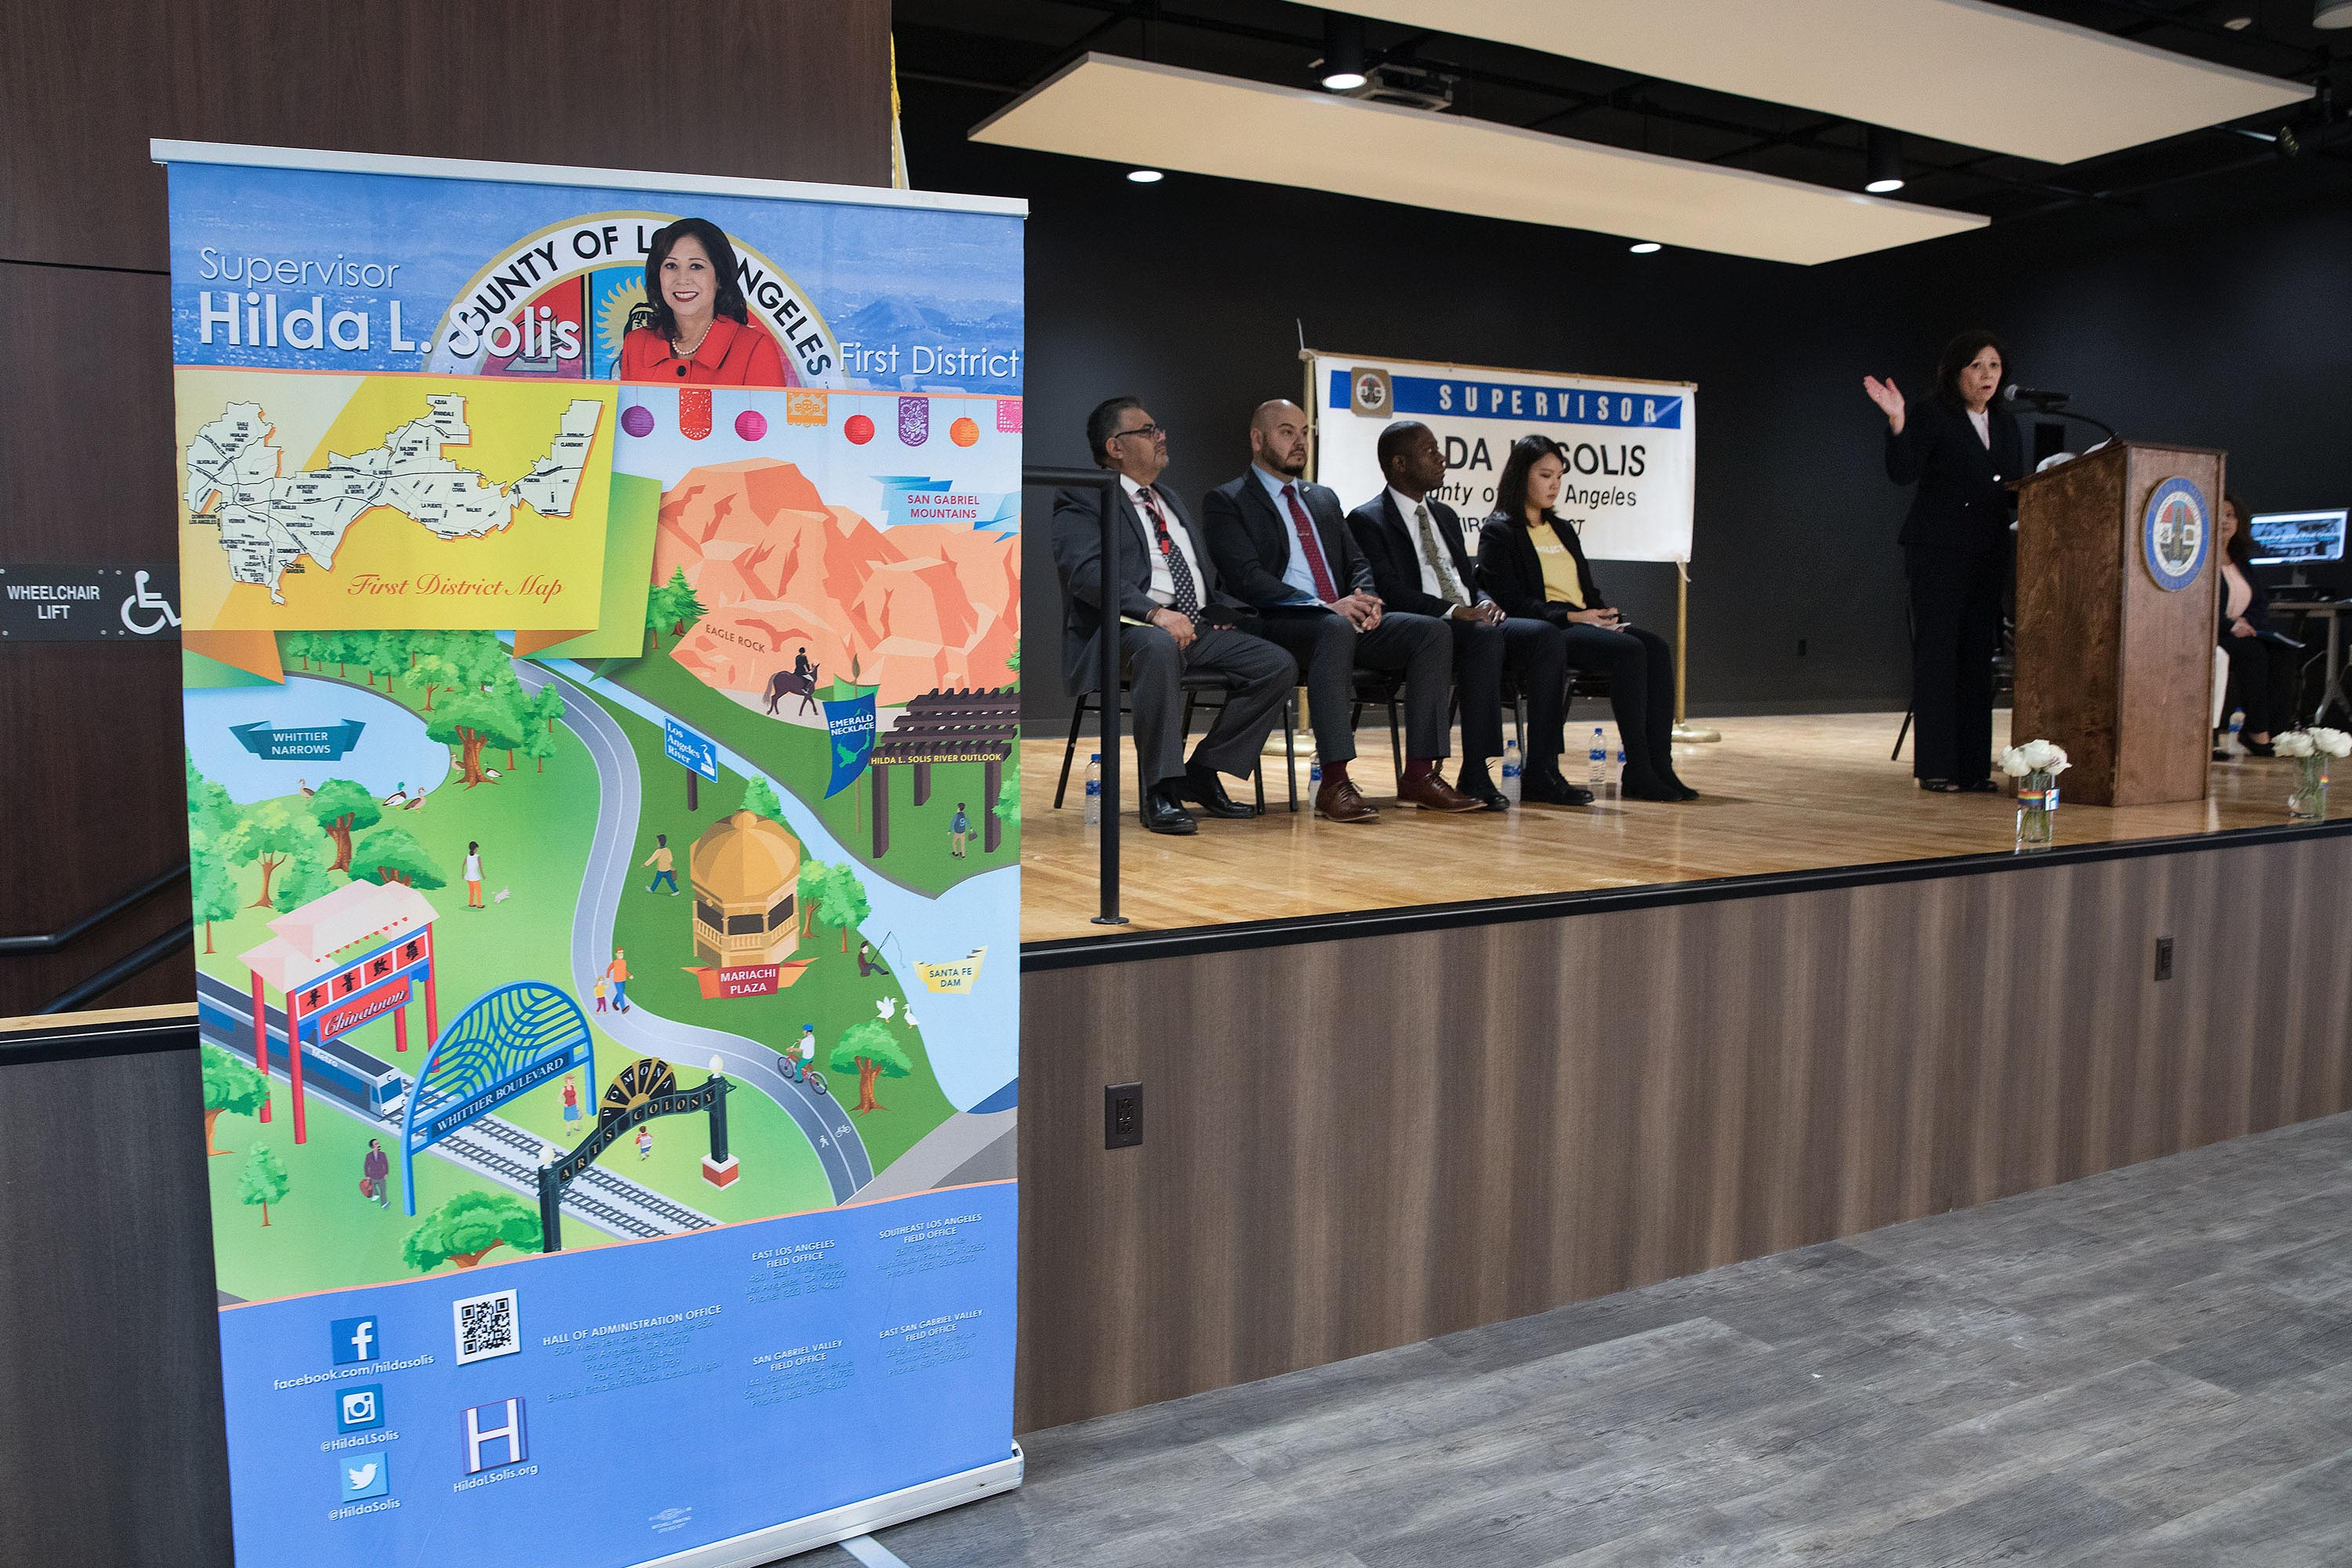 District 1 – Supervisor Hilda L. Solis<br> <b>June 5, 2019 – Small Business Expo. </b><br> <i>Photo by Steven Georges / For the Board of Supervisors</i>